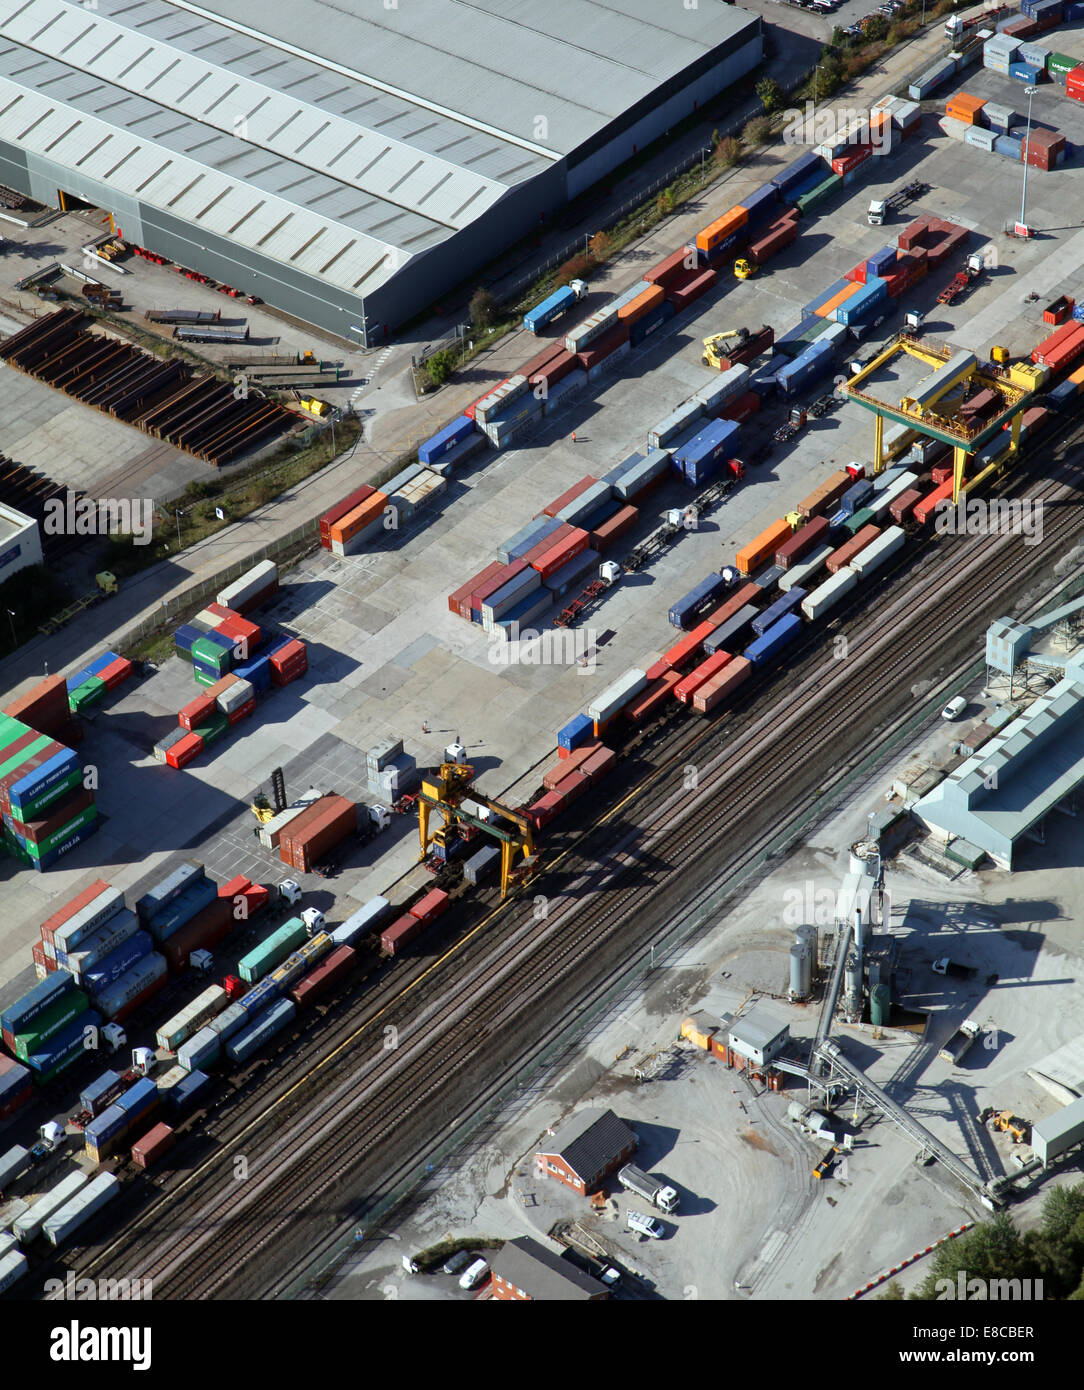 aerial view of a container depot - Stock Image